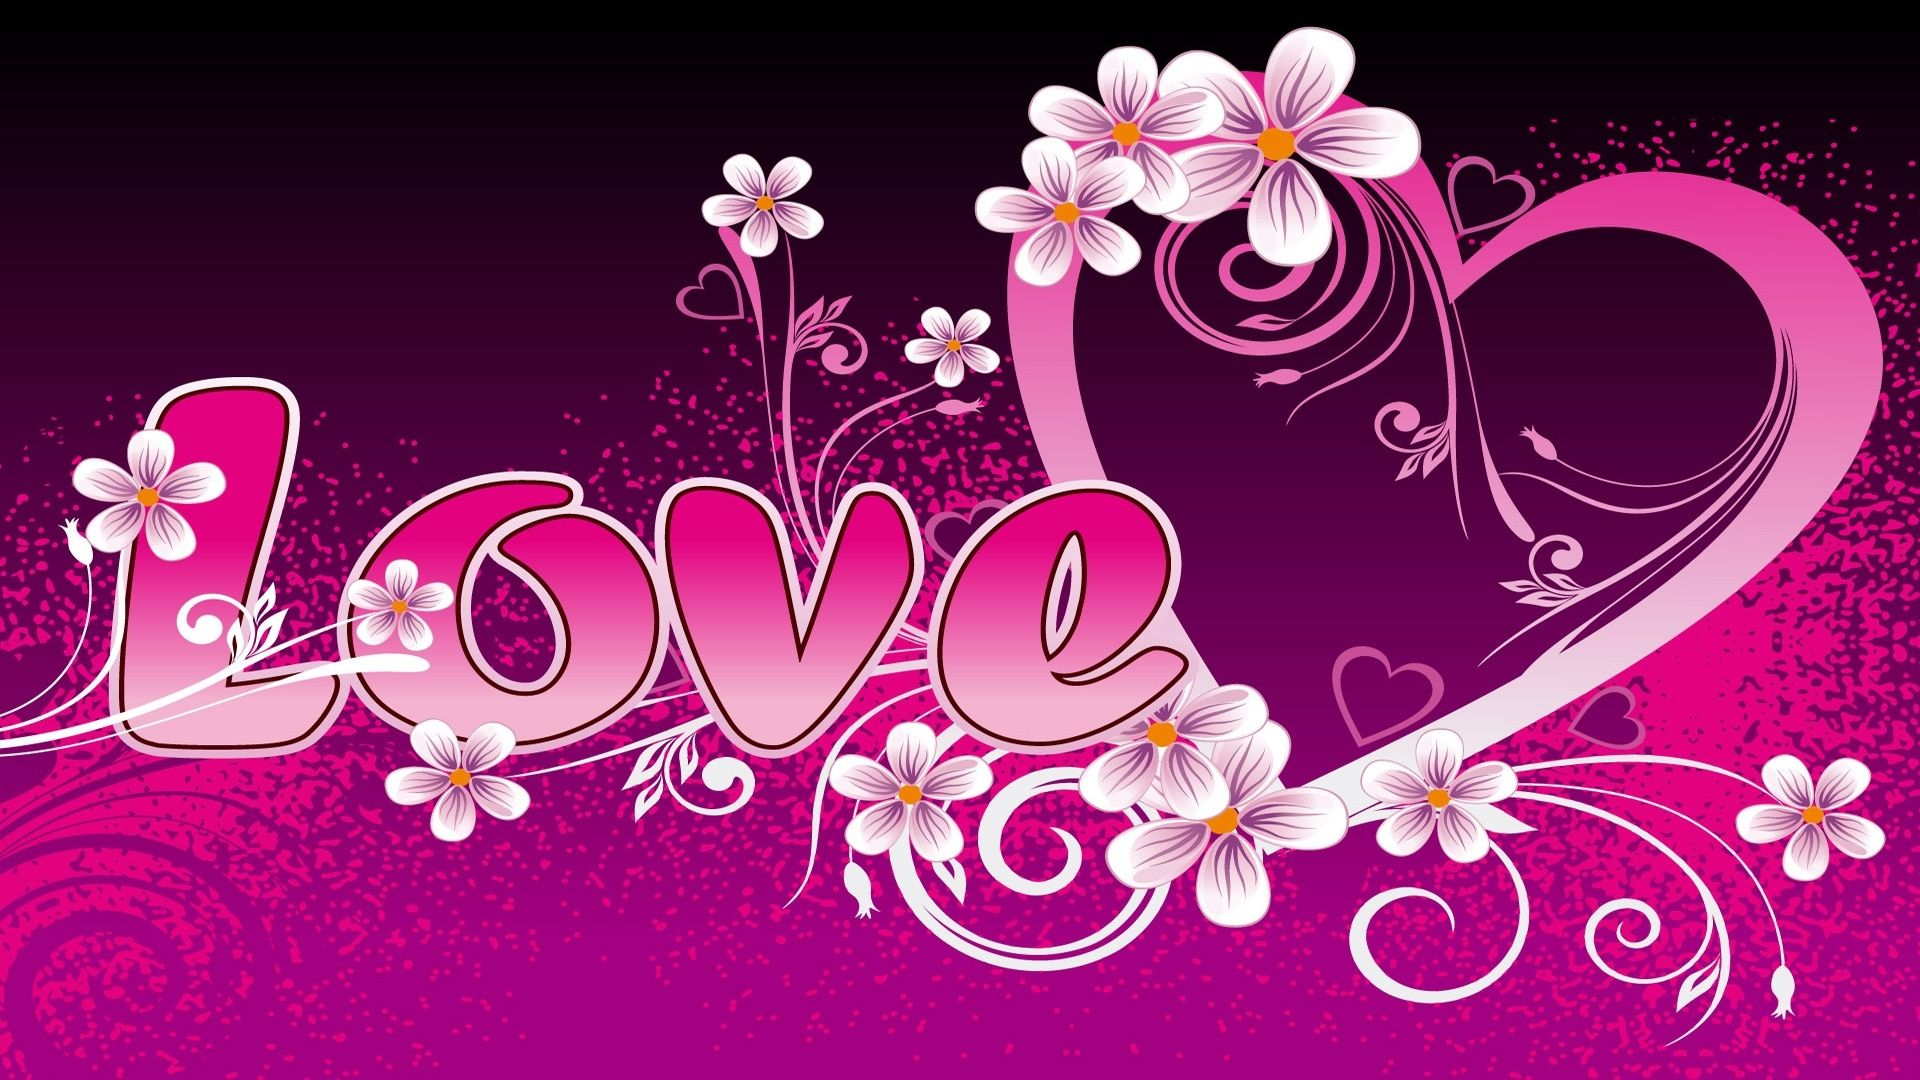 2d Love Heart Pink Love Wallpaper Flower Images Wallpapers Cute Love Images